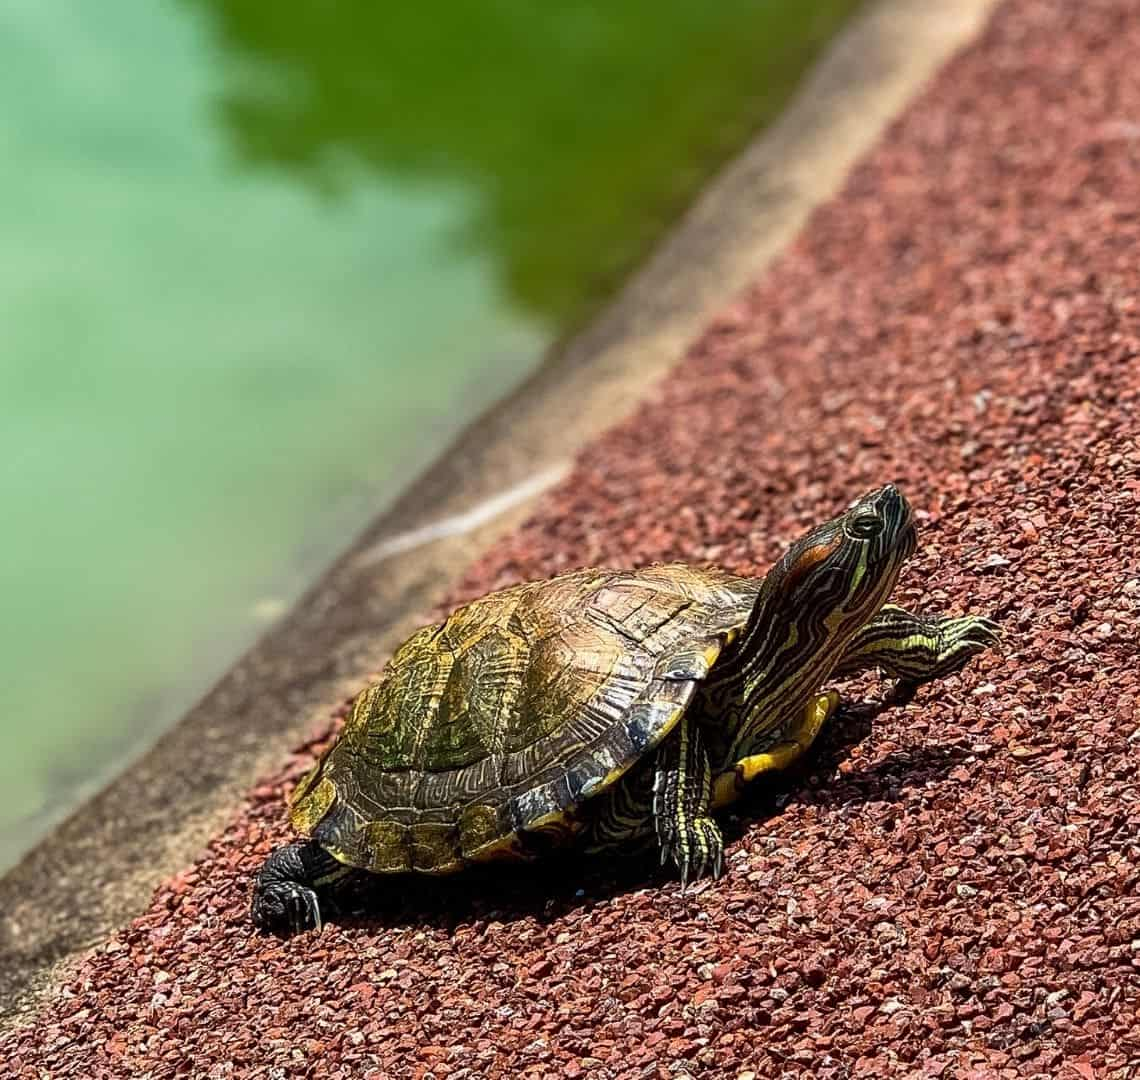 The main subject, a turtle with intricate patterns all along it's head, neck, legs and shell is in focus. It is on a red paved sloped surface which is also in focus. In the background and out of focus is the green water of a pond.